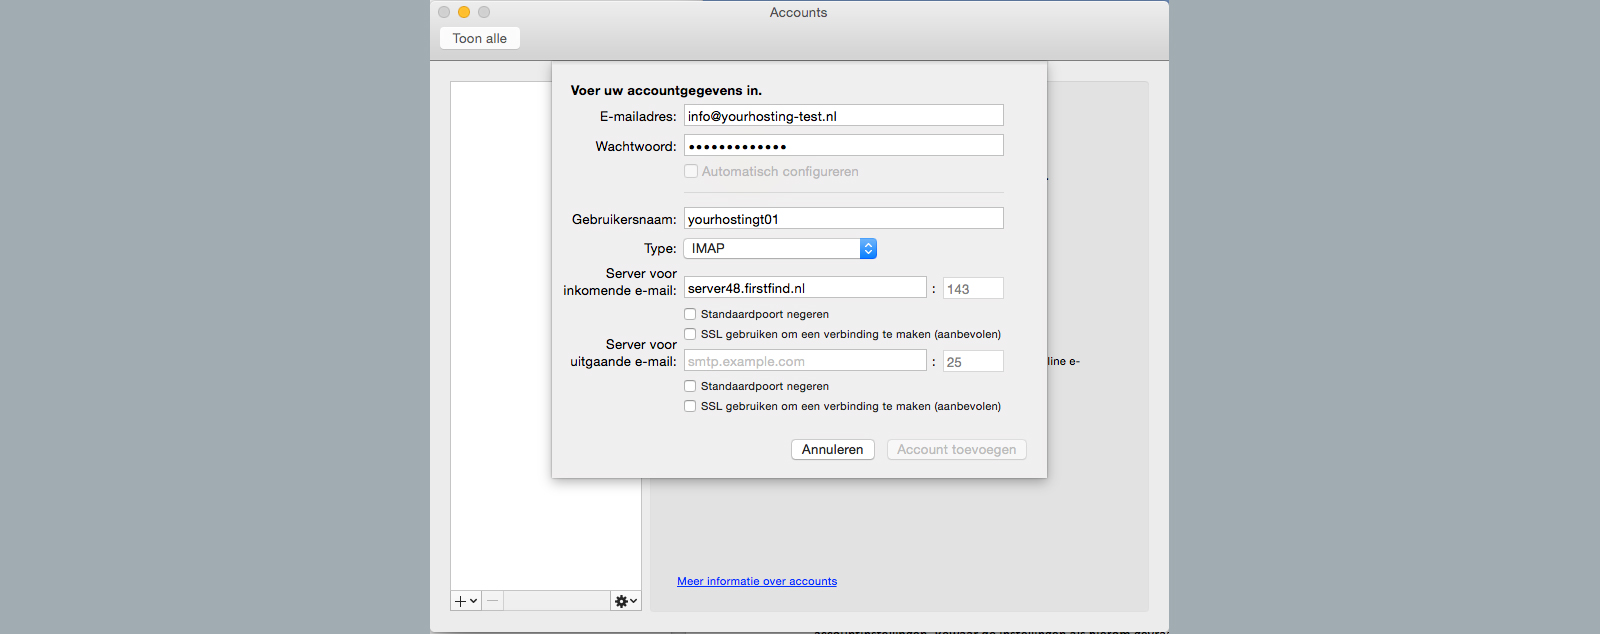 voer accountgegevens in outlook 2011 for mac